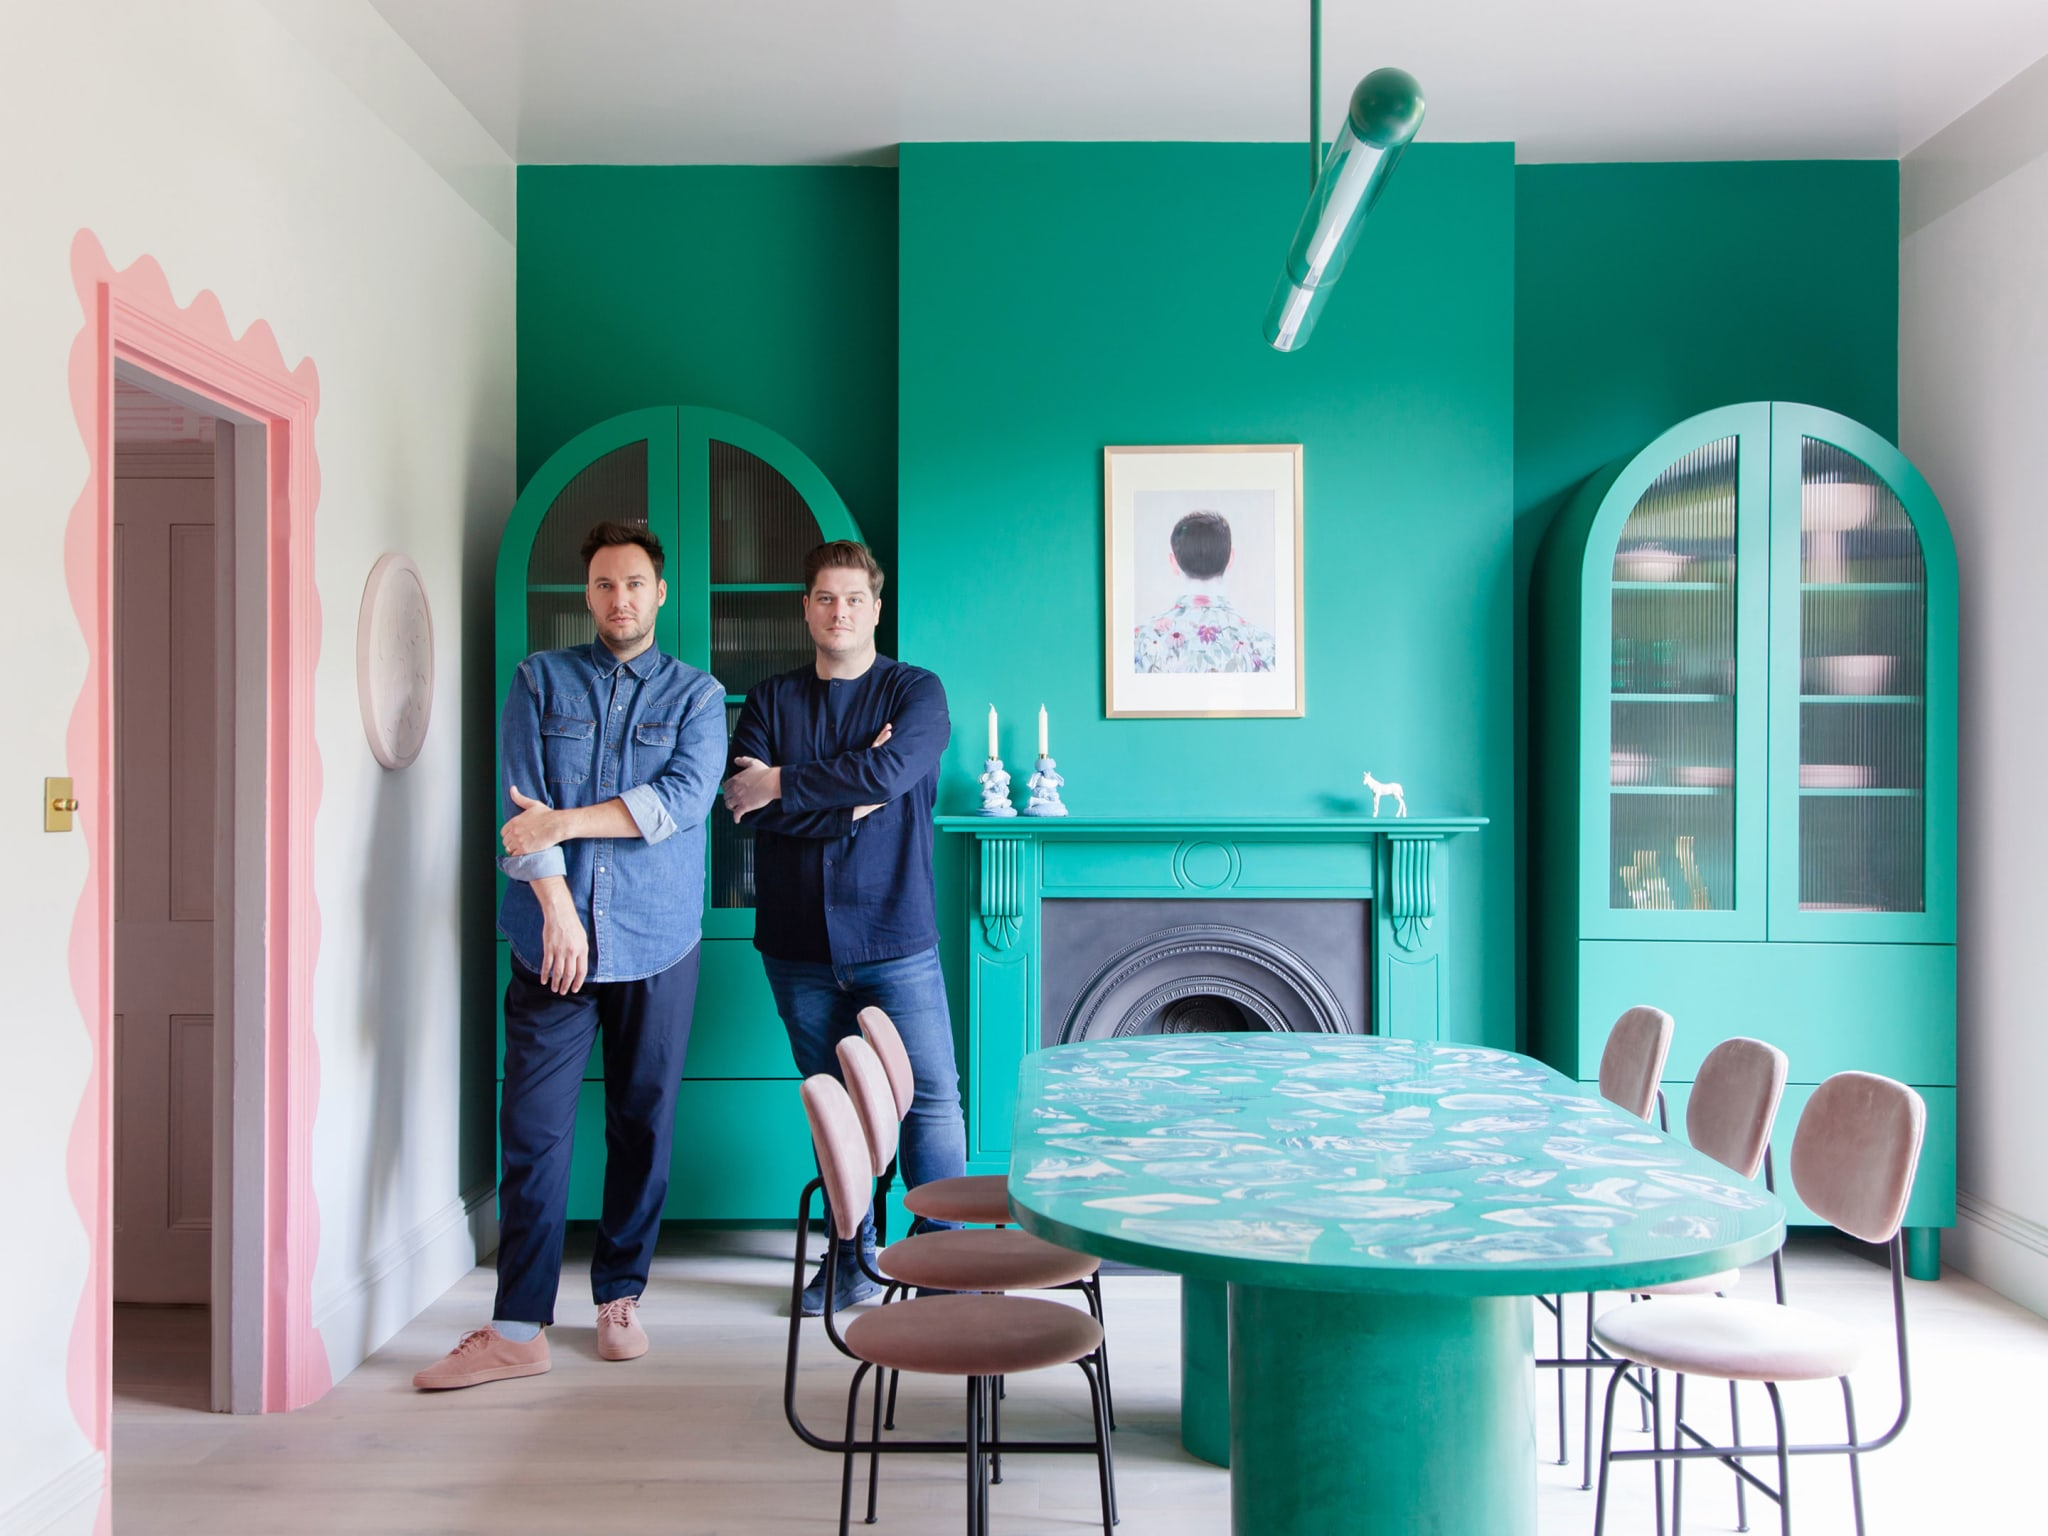 Two men standing in a room painted pink and green.